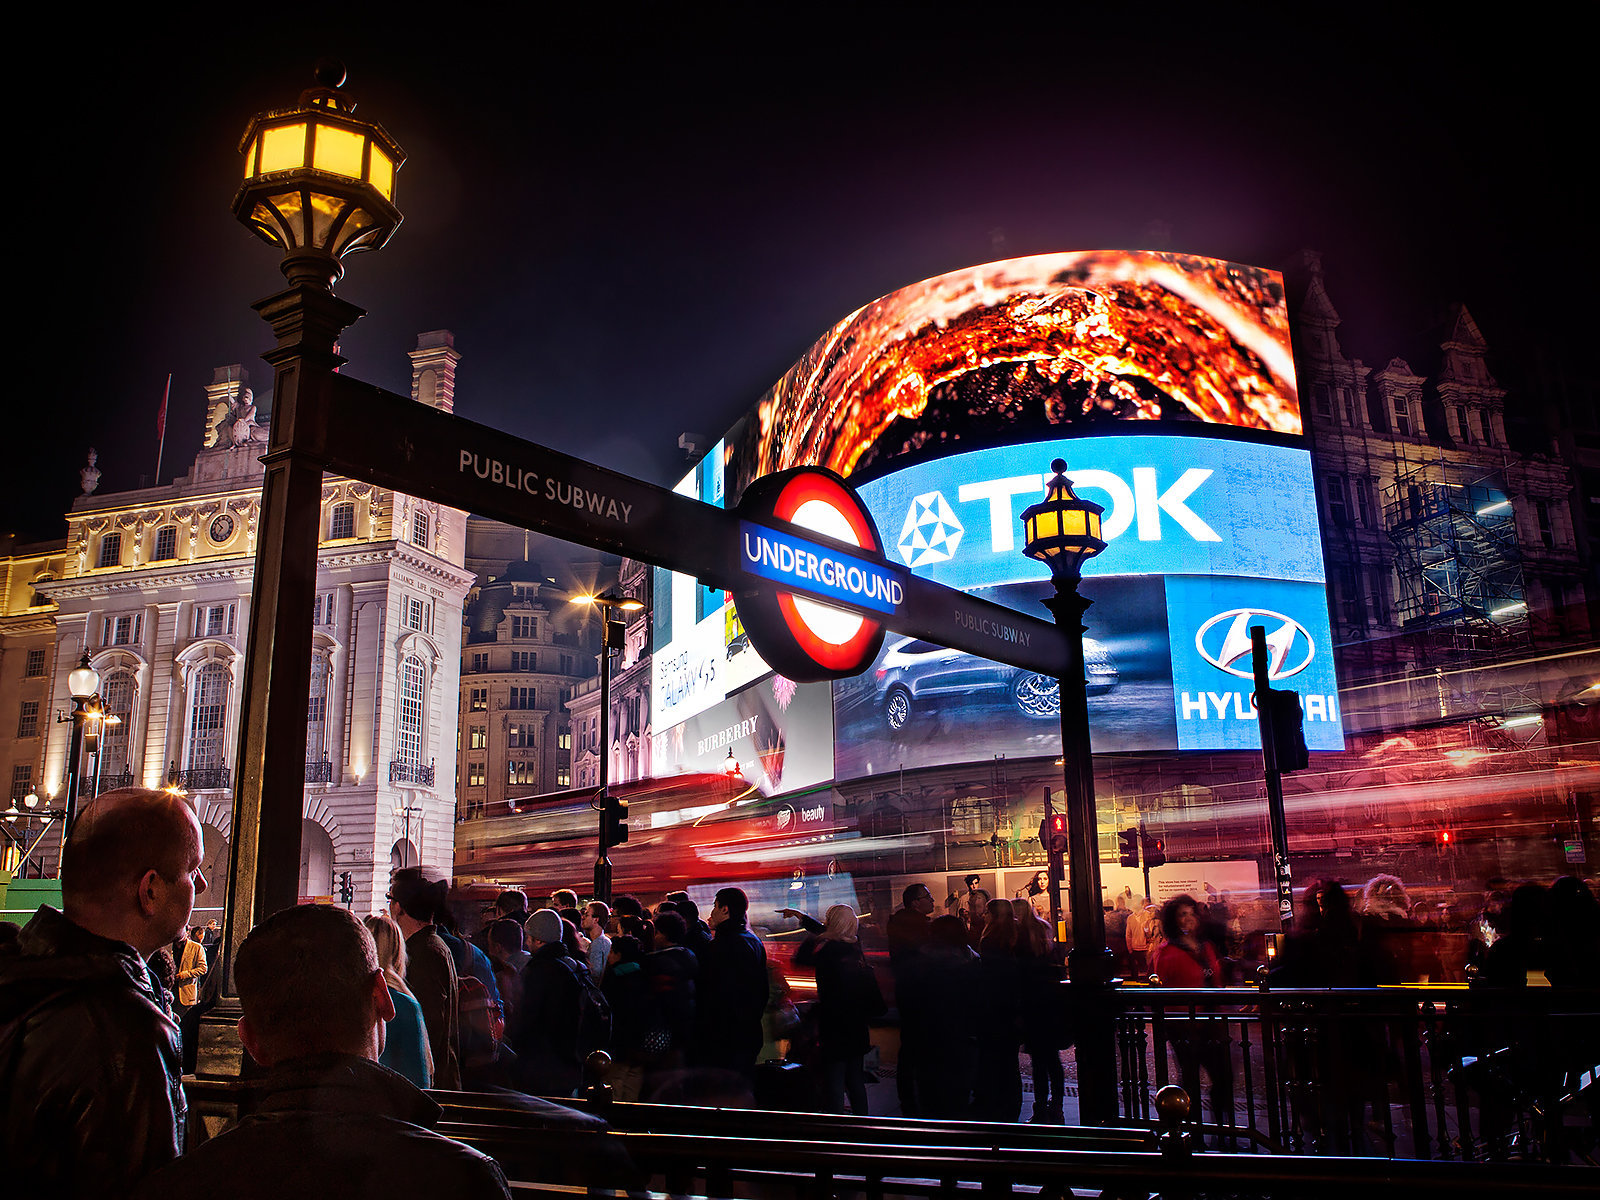 Piccadilly Circus: London